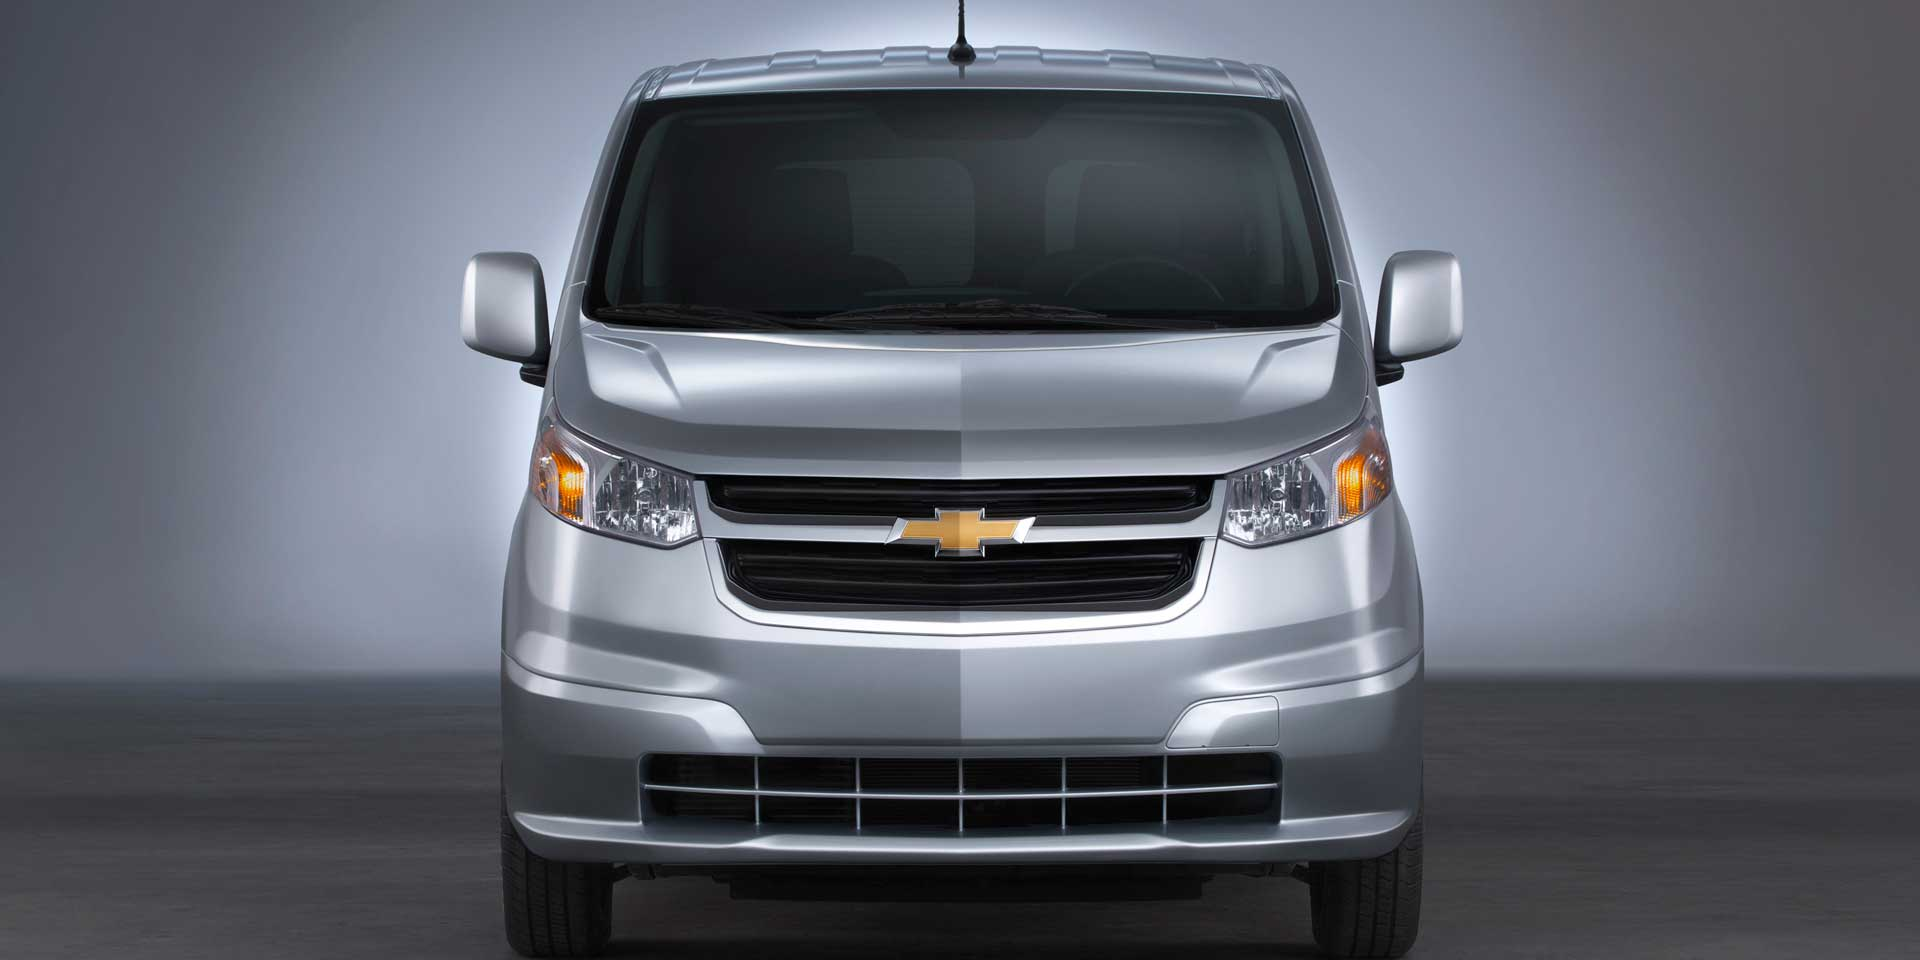 2019 - Chevrolet - City Express - Vehicles on Display ...